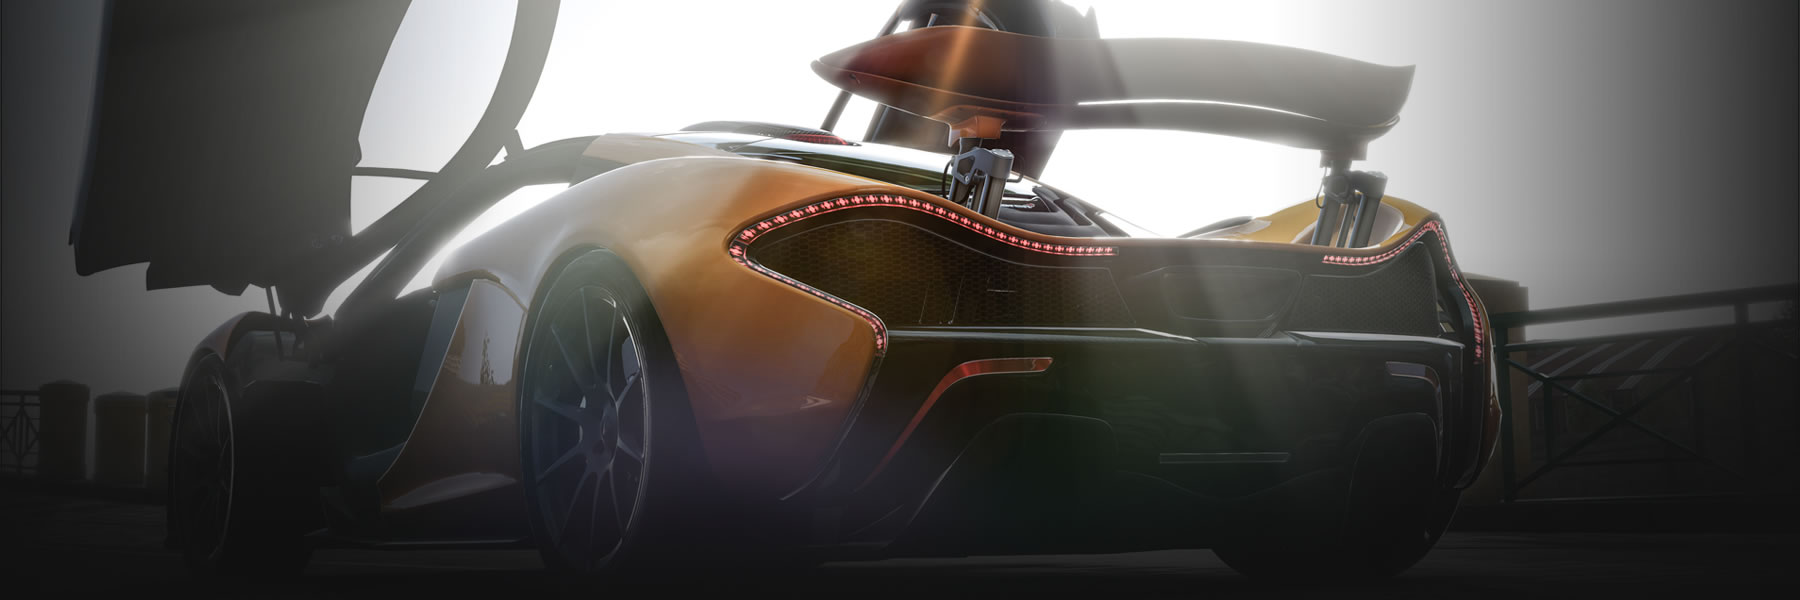 Forza Motorsport 5 user-generated content